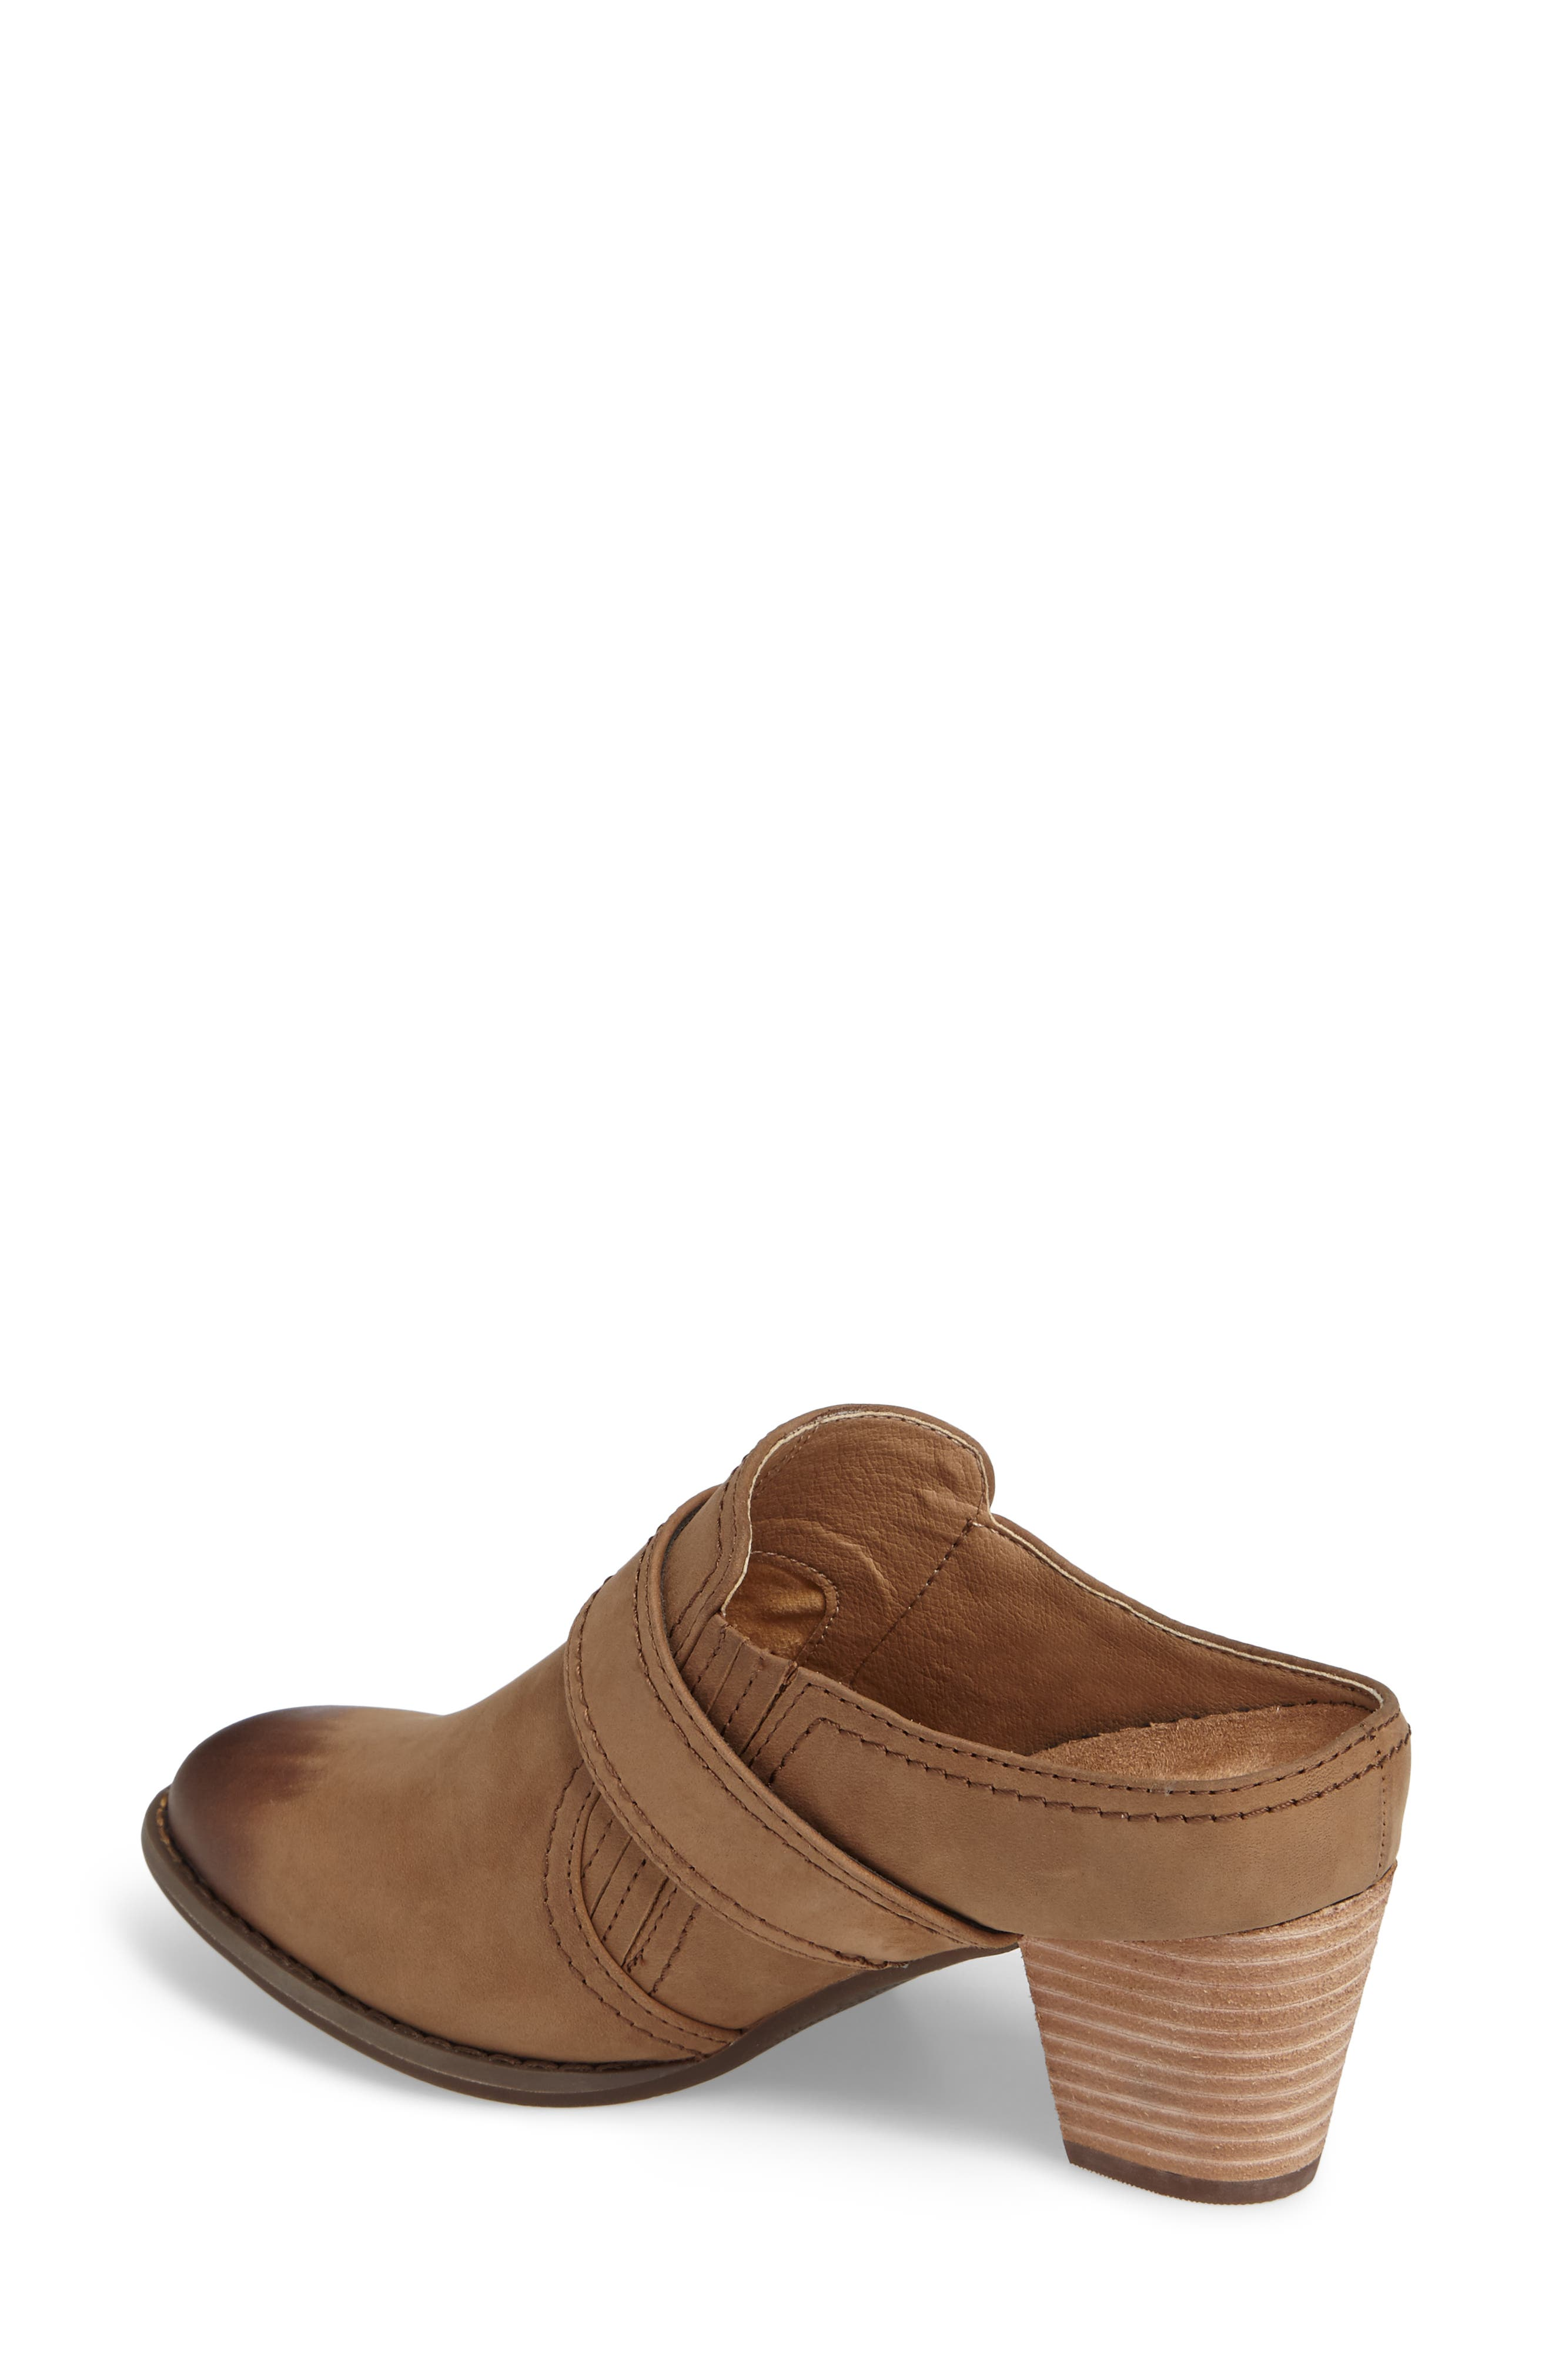 Cheyenne Mule,                             Alternate thumbnail 2, color,                             Brown Leather